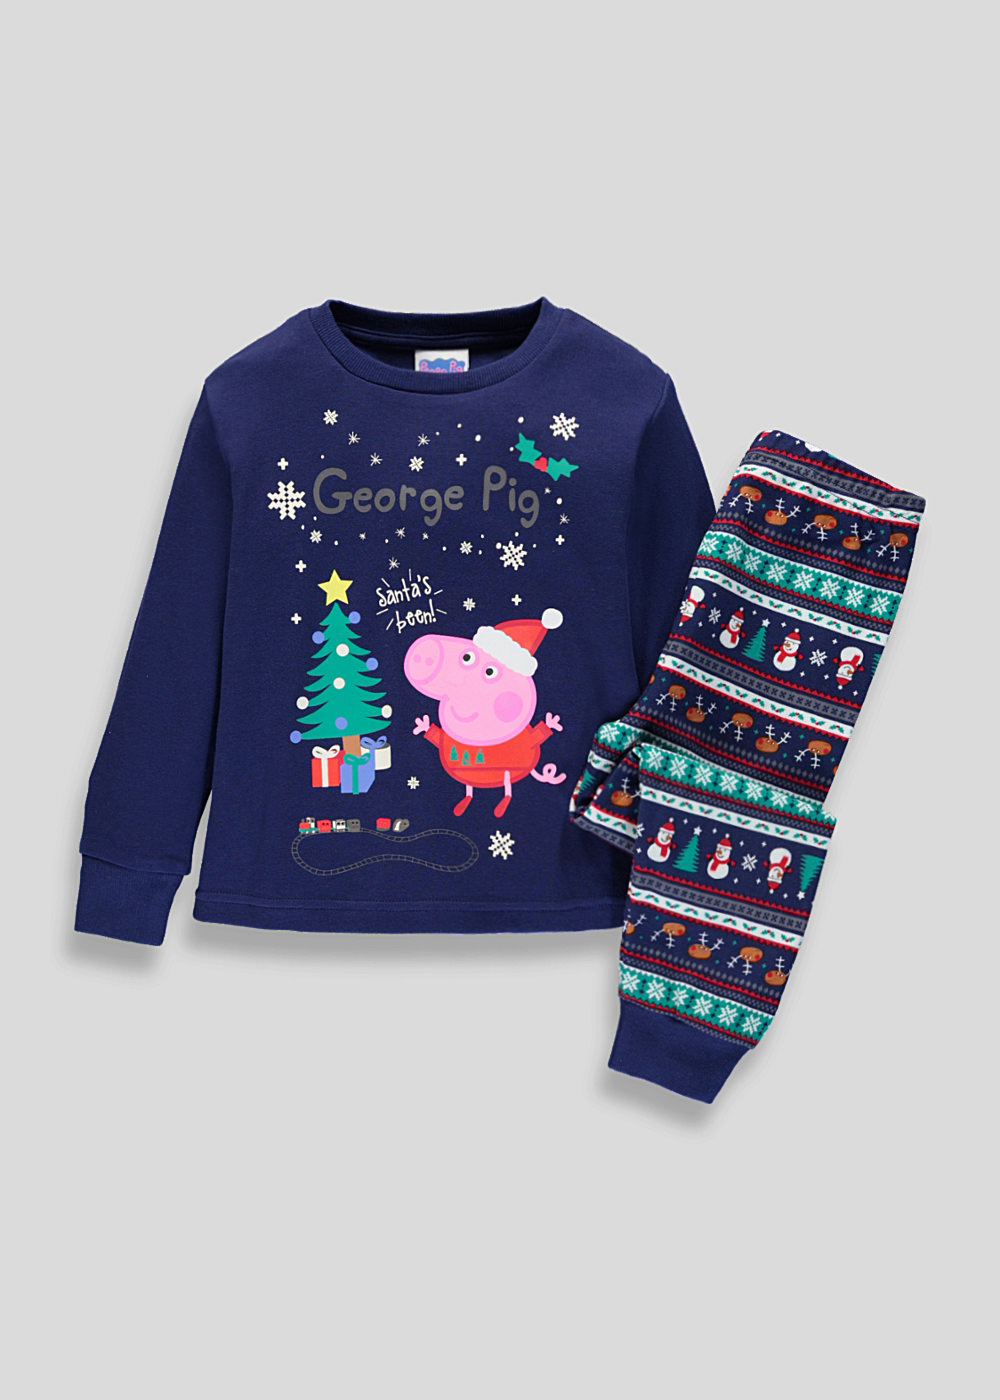 db4697f1 This review is from Kids Family Peppa Pig George Christmas Pyjama Set  9mths-5yrs.